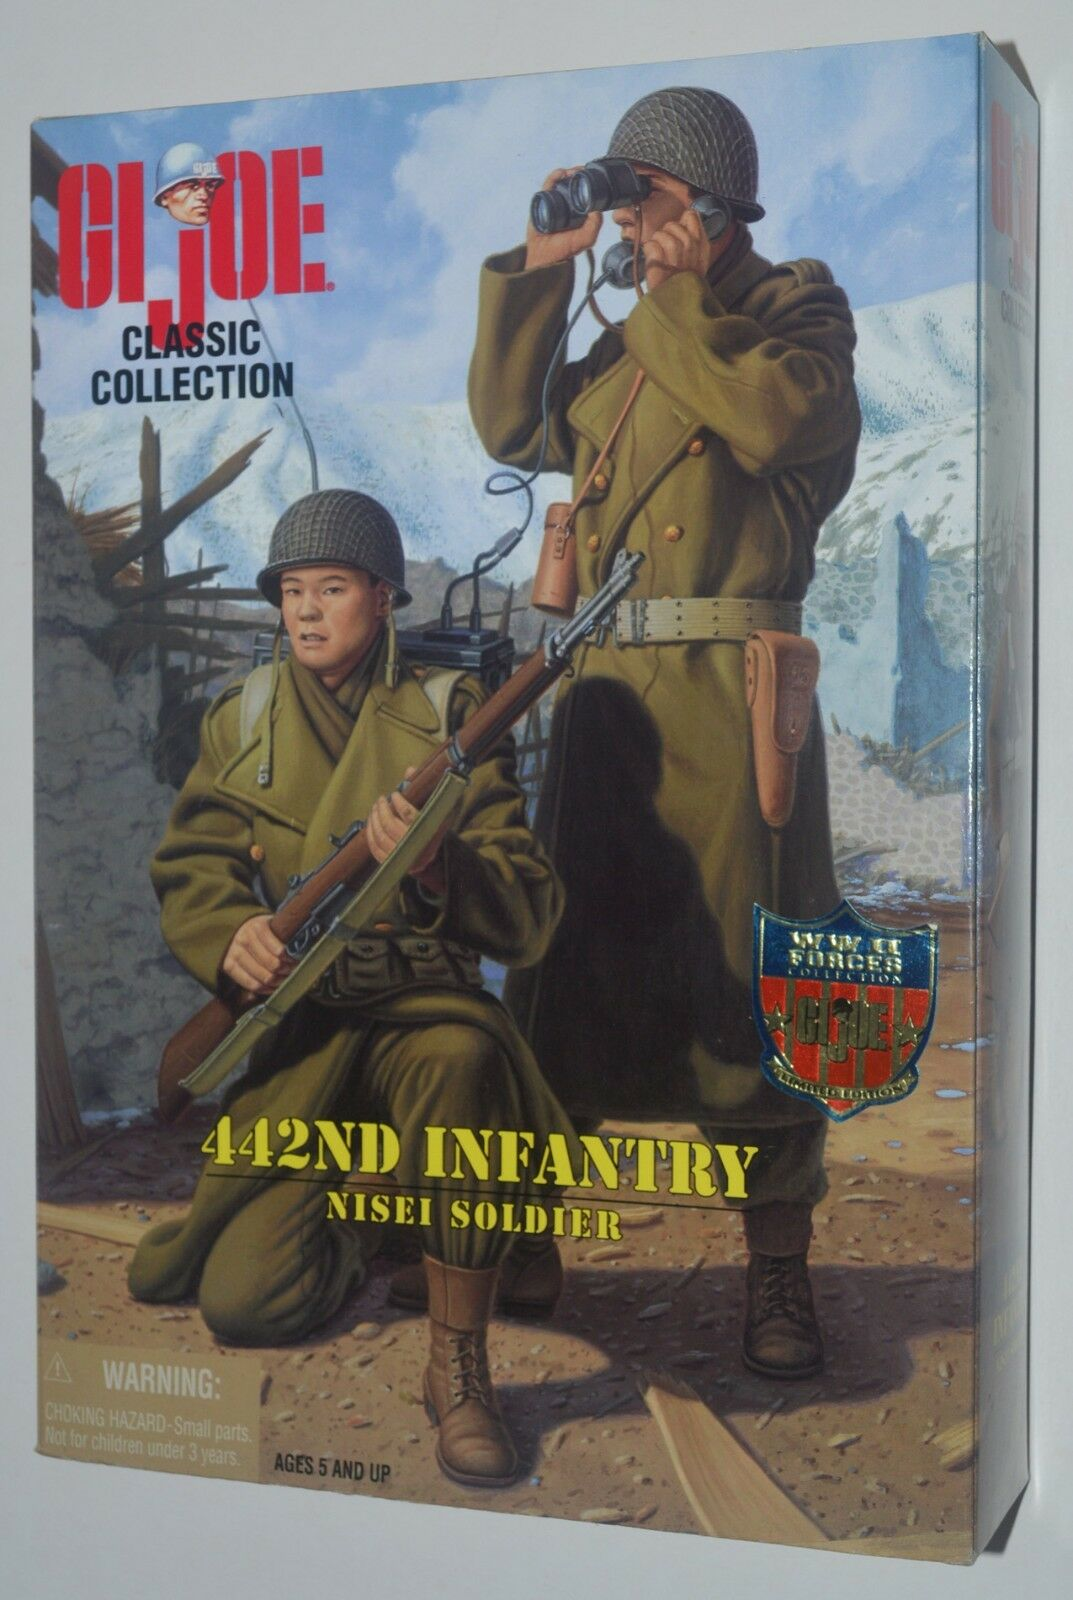 GI Joe 442nd Infantry NISEI SOLDIER WWII Forces Collection Action Figure MIB